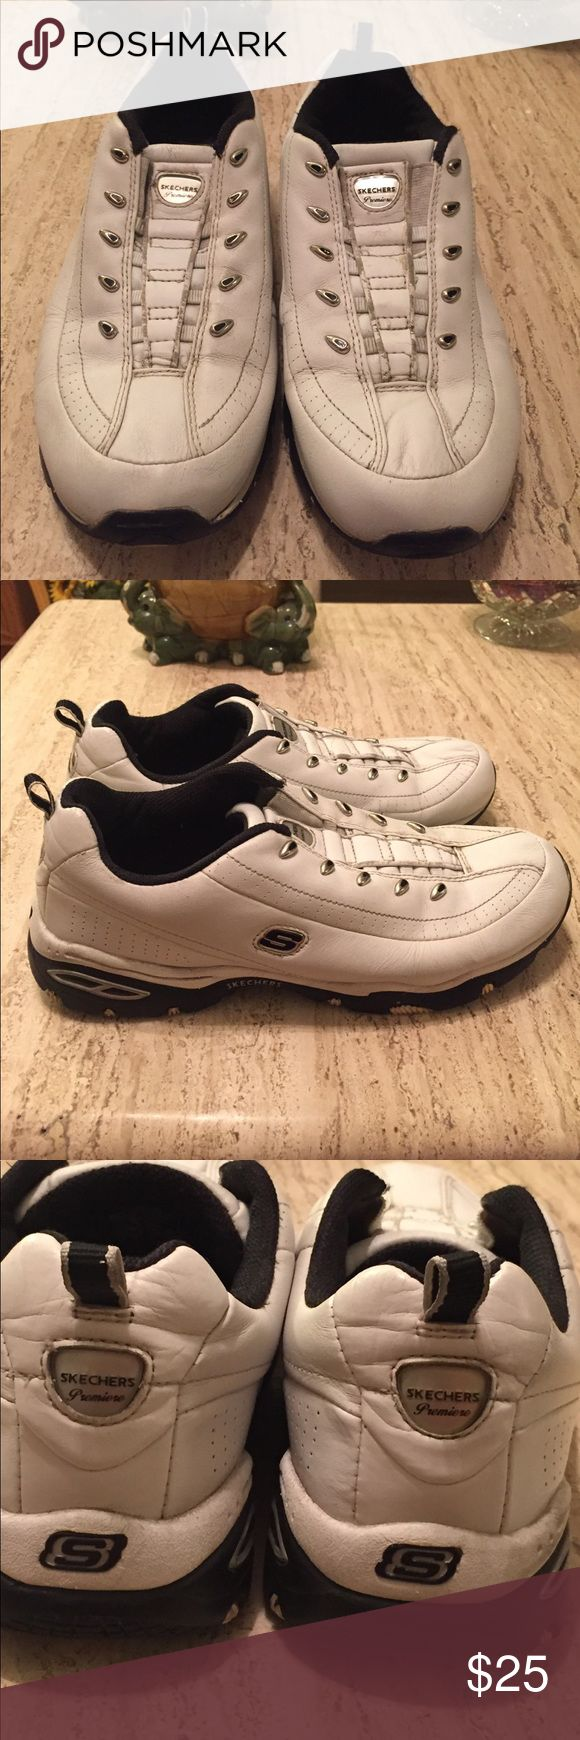 Sketchers Sneakers, size 9.5.  No Shoe Strings. Sketchers Sneakers, size 9.5.  No Shoe Strings needed, just slip on.  Very comfortable for walking and performing fitness exercise. In great condition, worn only once. Skechers Shoes Athletic Shoes